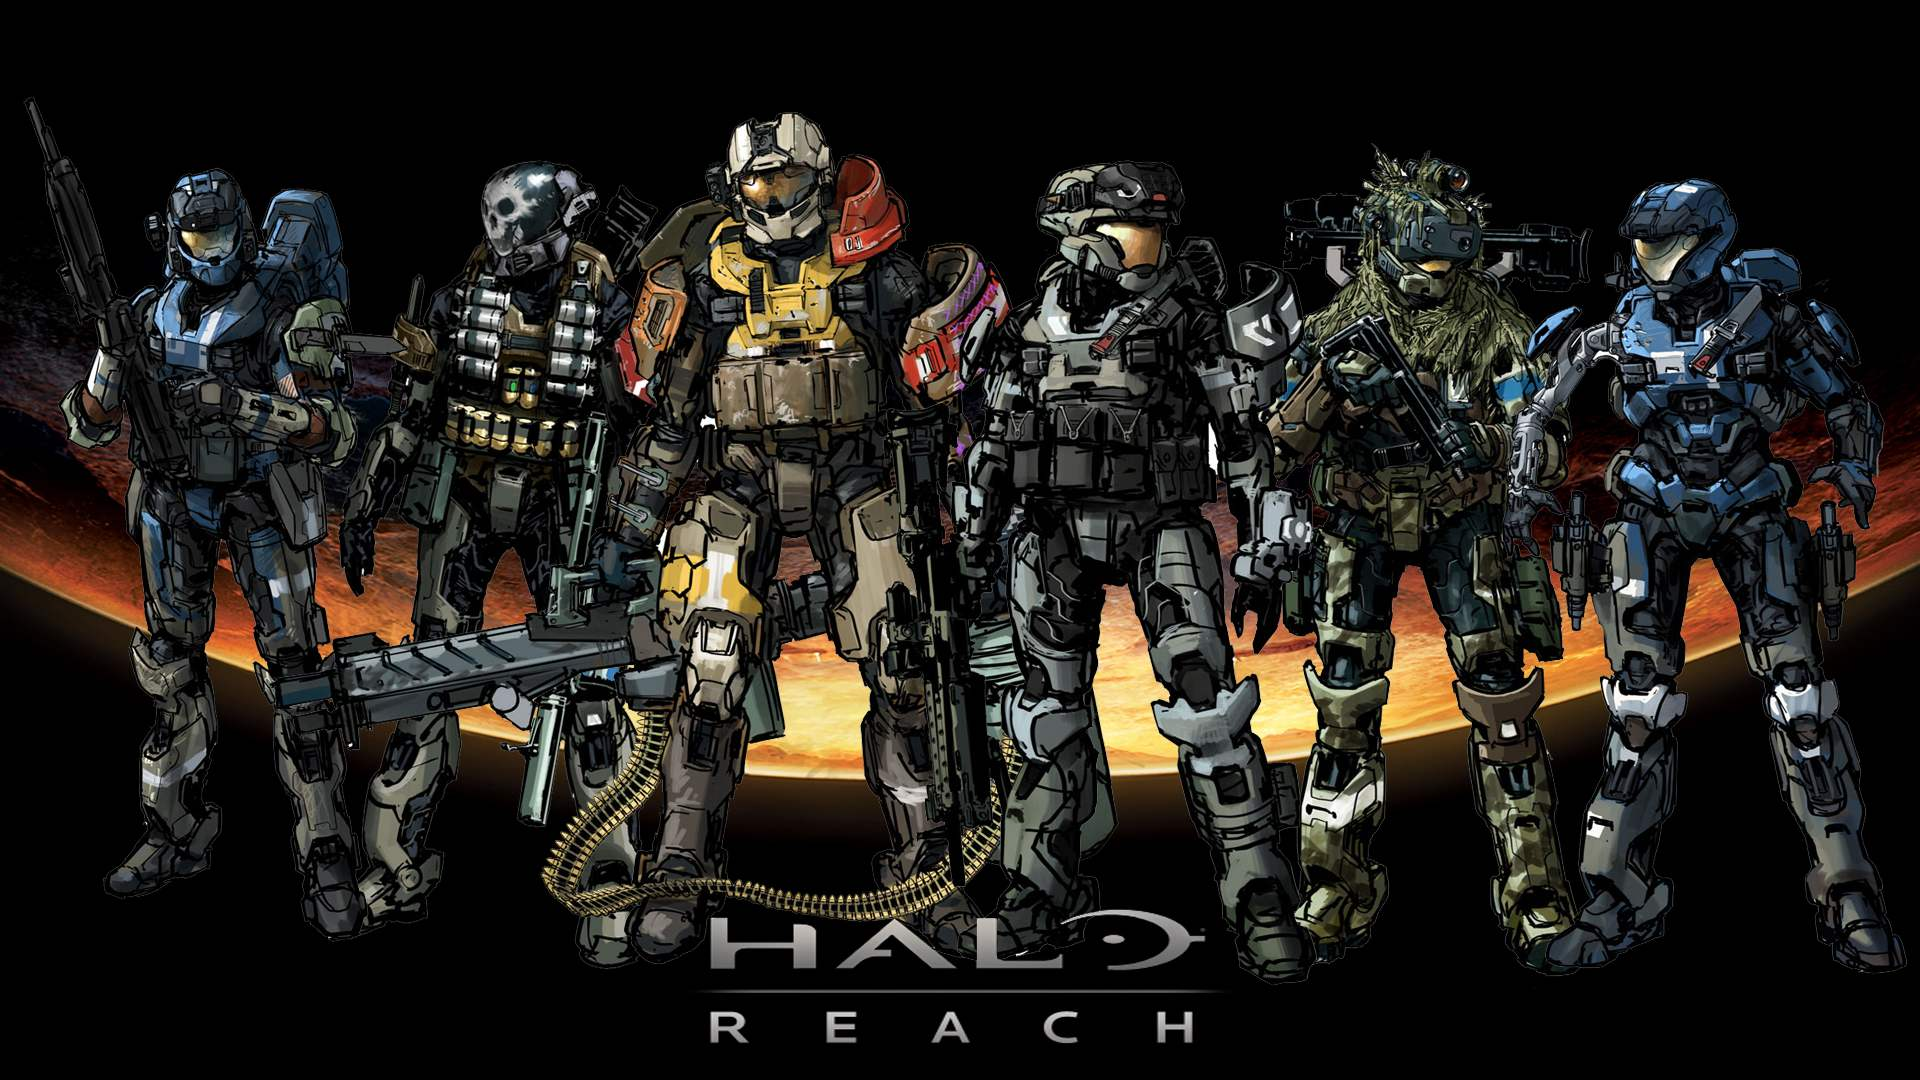 Halo Reach Wallpapers in HD 1920x1080